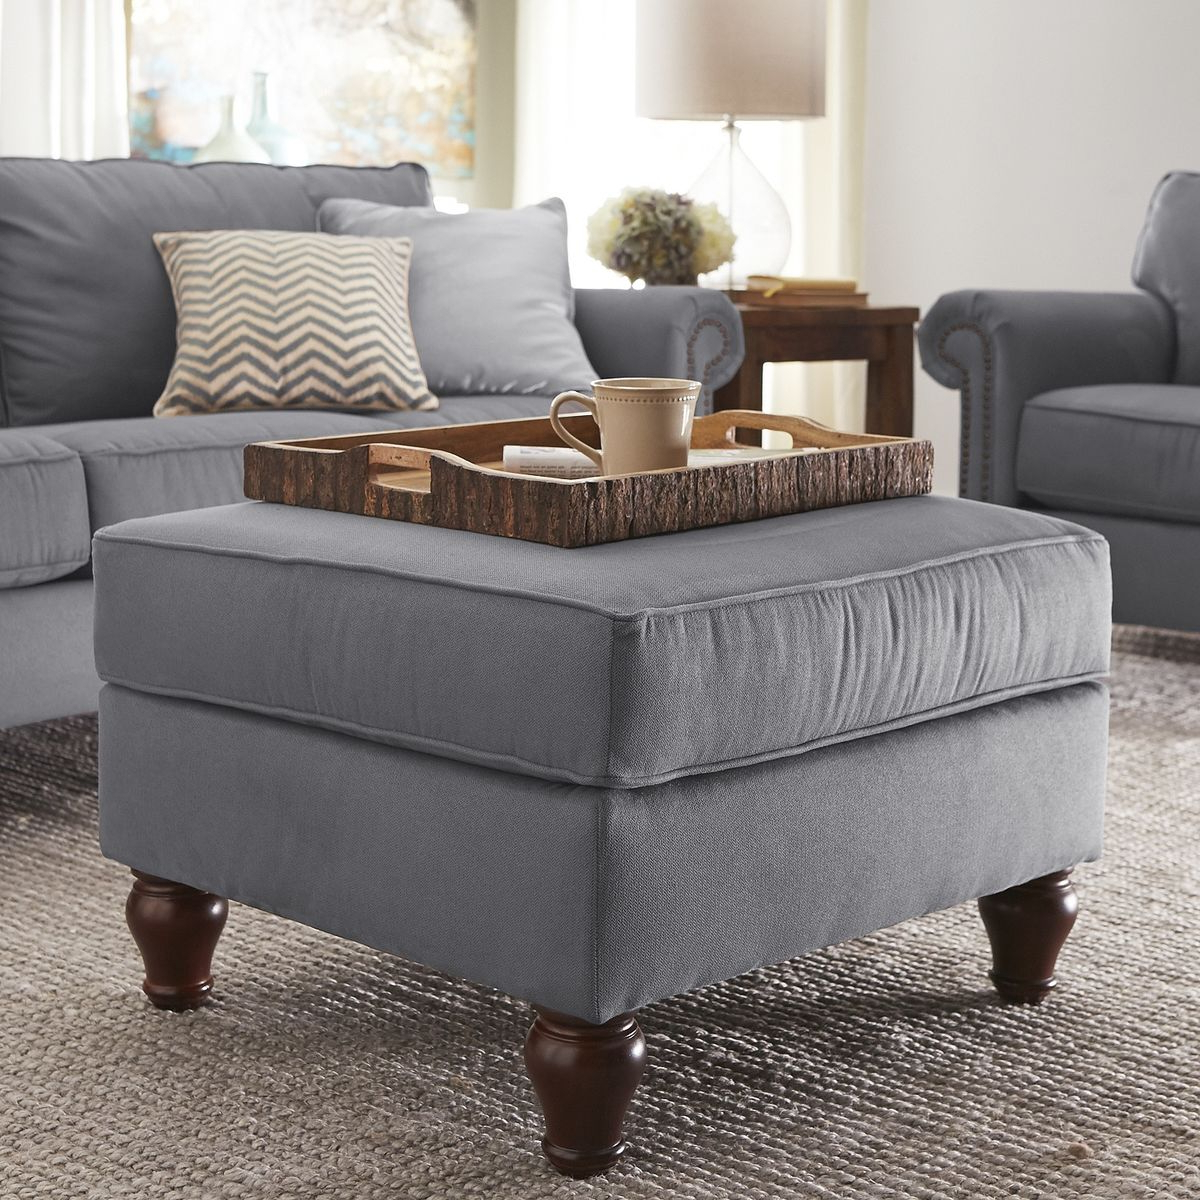 Alton Fabric Ottoman Coffee Table Graphite Gray Upholstery Large Regarding Well Known Alton Cocktail Tables (View 19 of 20)